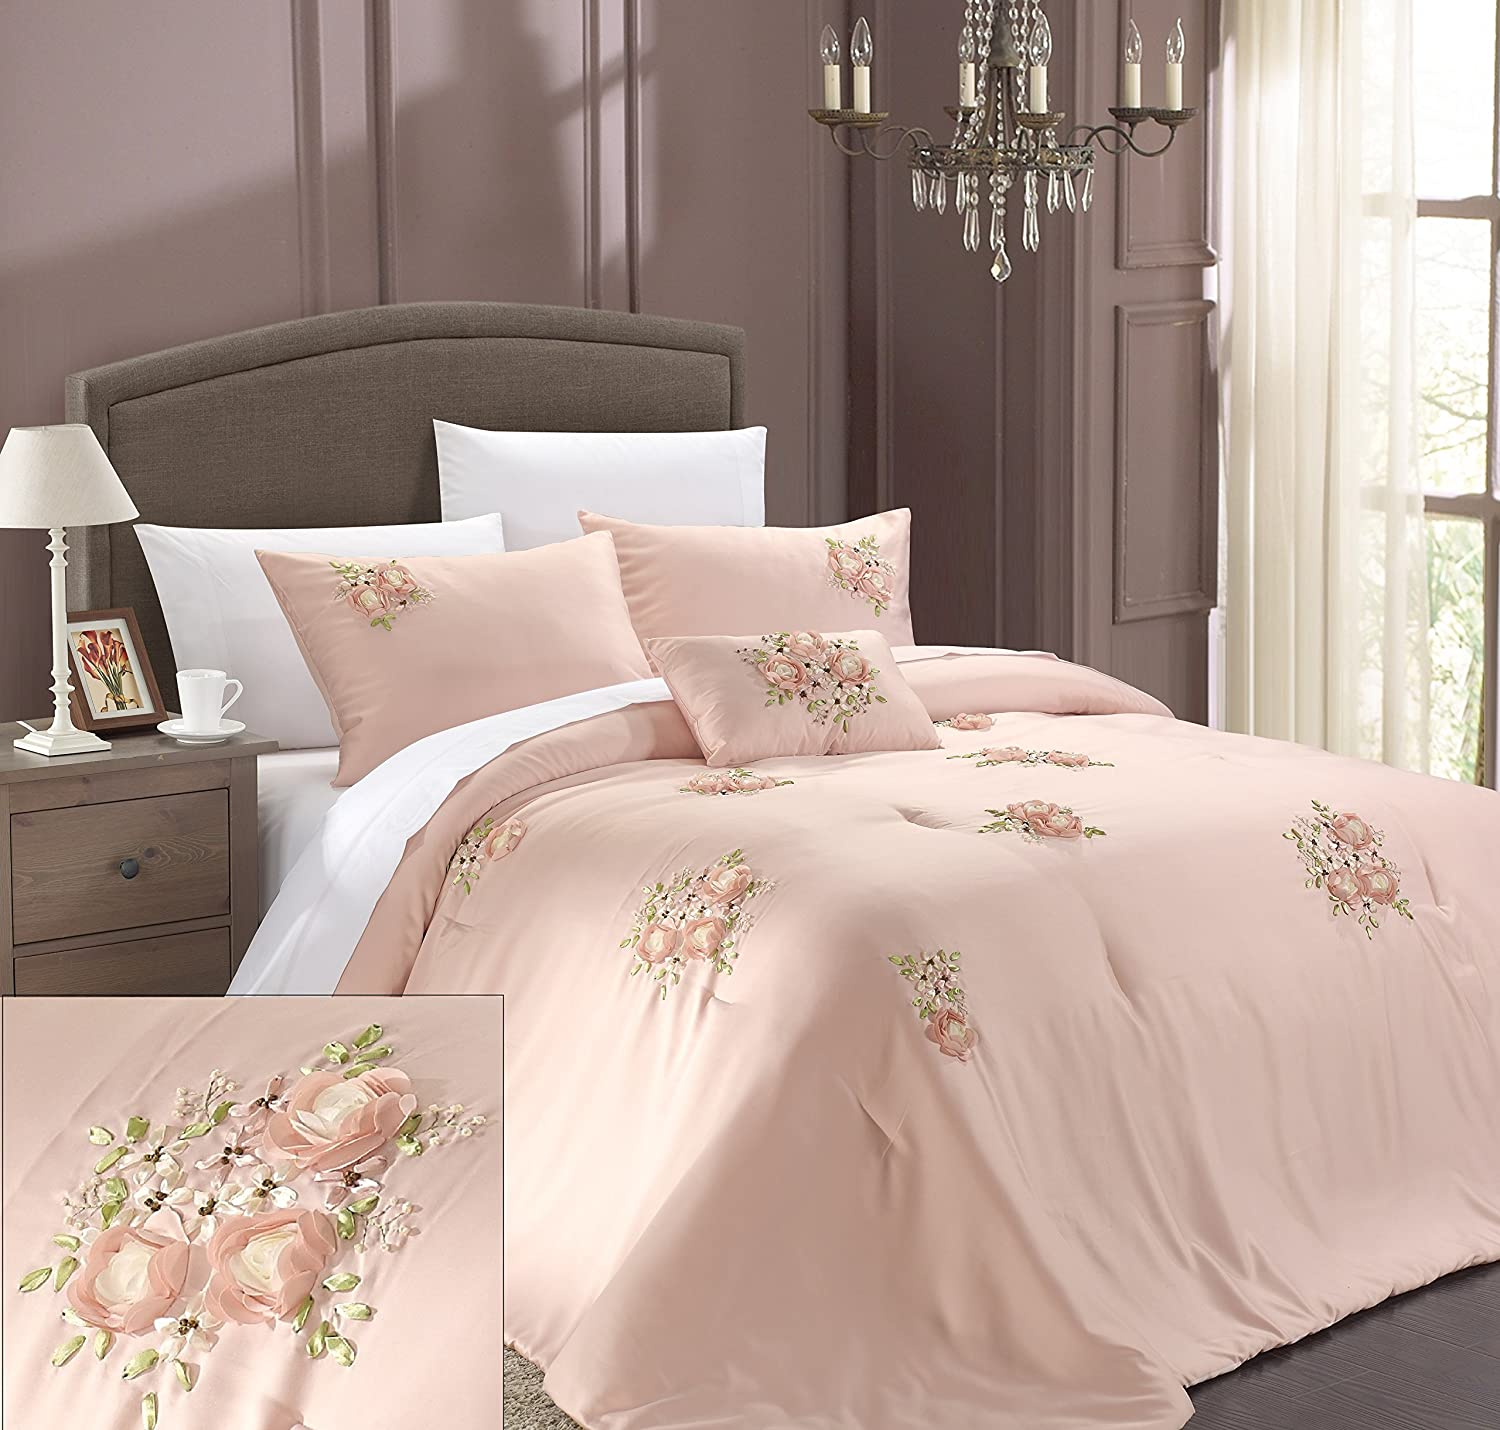 comforter under sets best king bedding designs size cheap sebastian discount review of ensembles